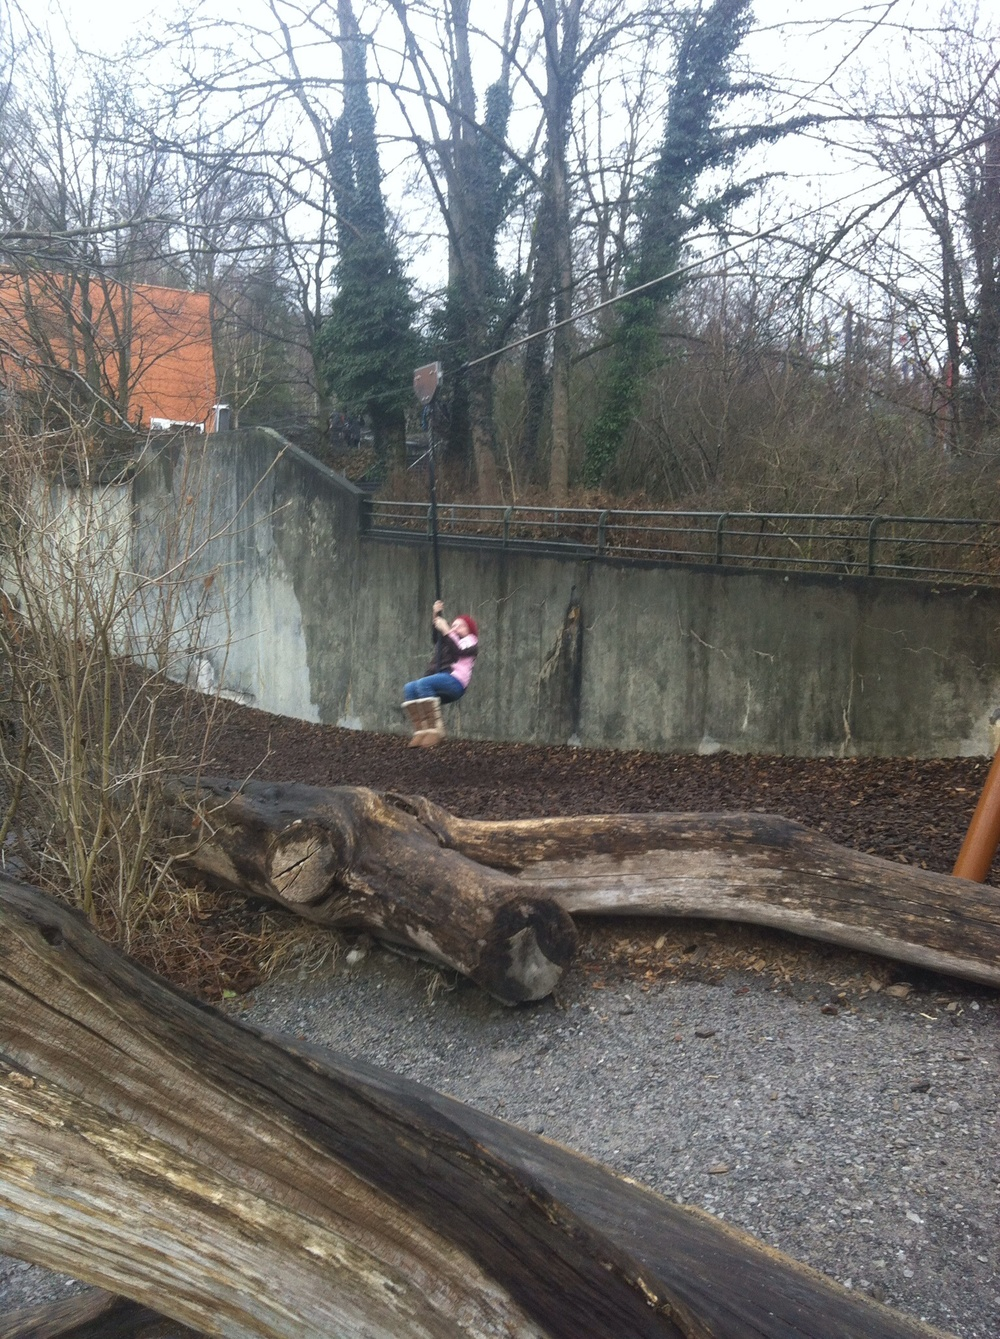 Zip lining at the Zurich Zoo.